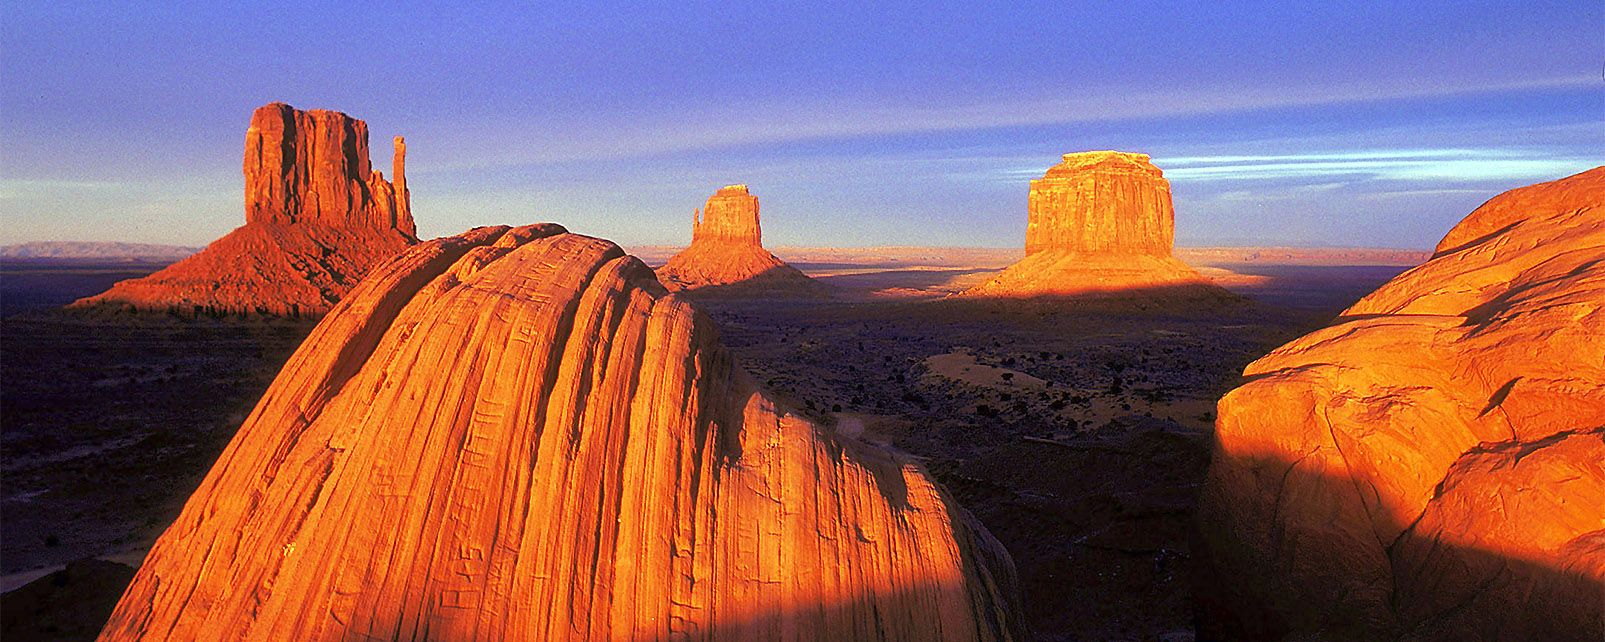 Monument Valley , United States of America